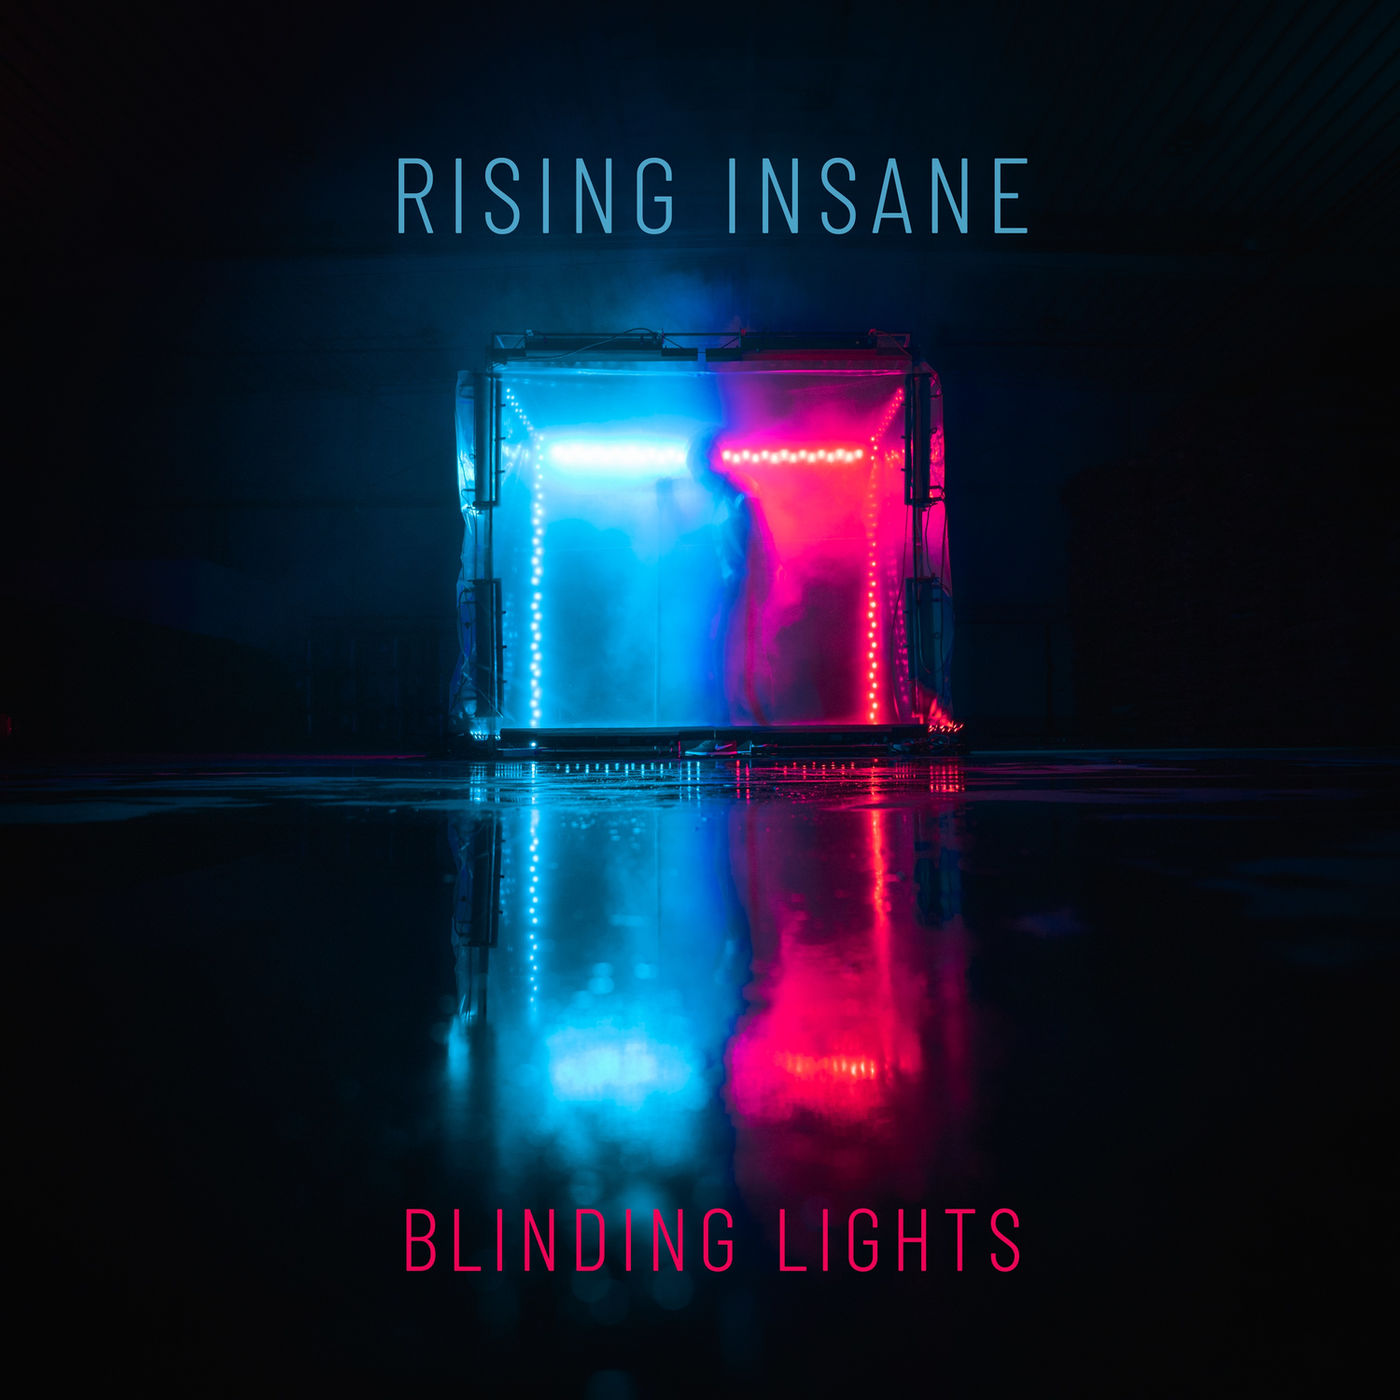 Rising Insane - Blinding Lights [single] (2020)